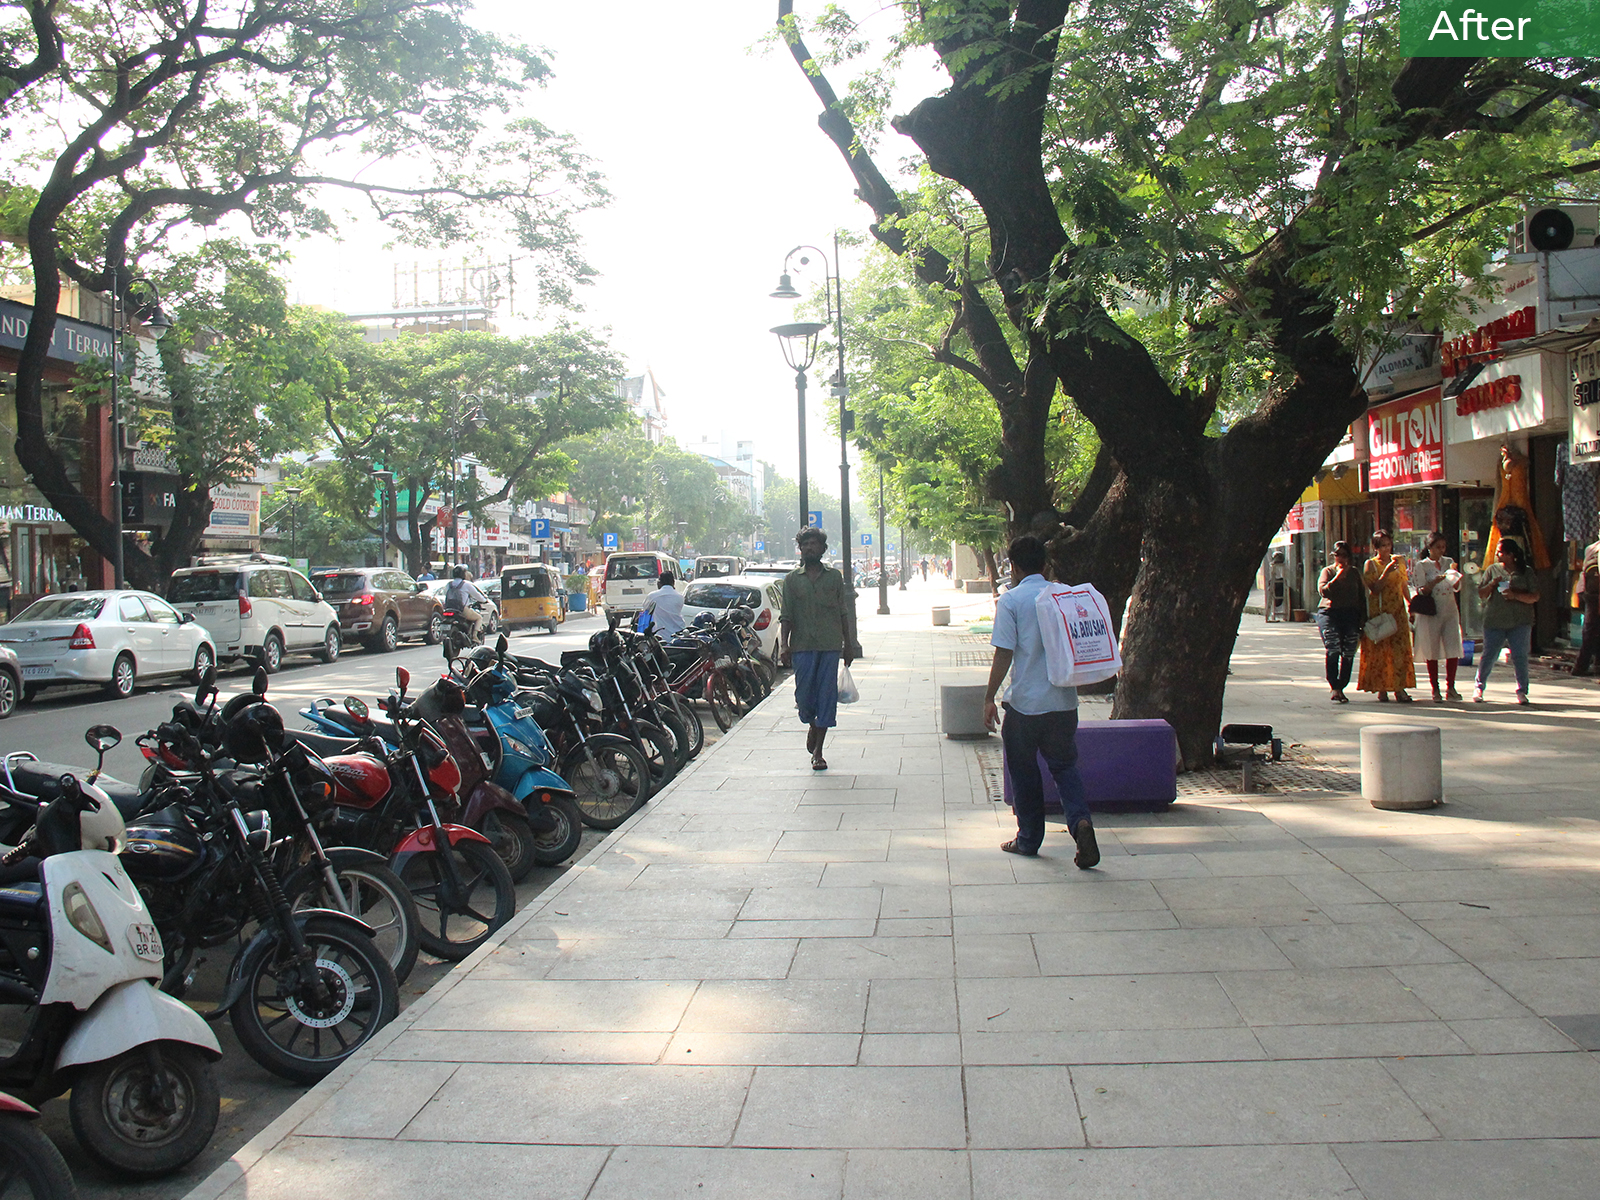 After-The Pondy Bazaar Pedestrian Plaza